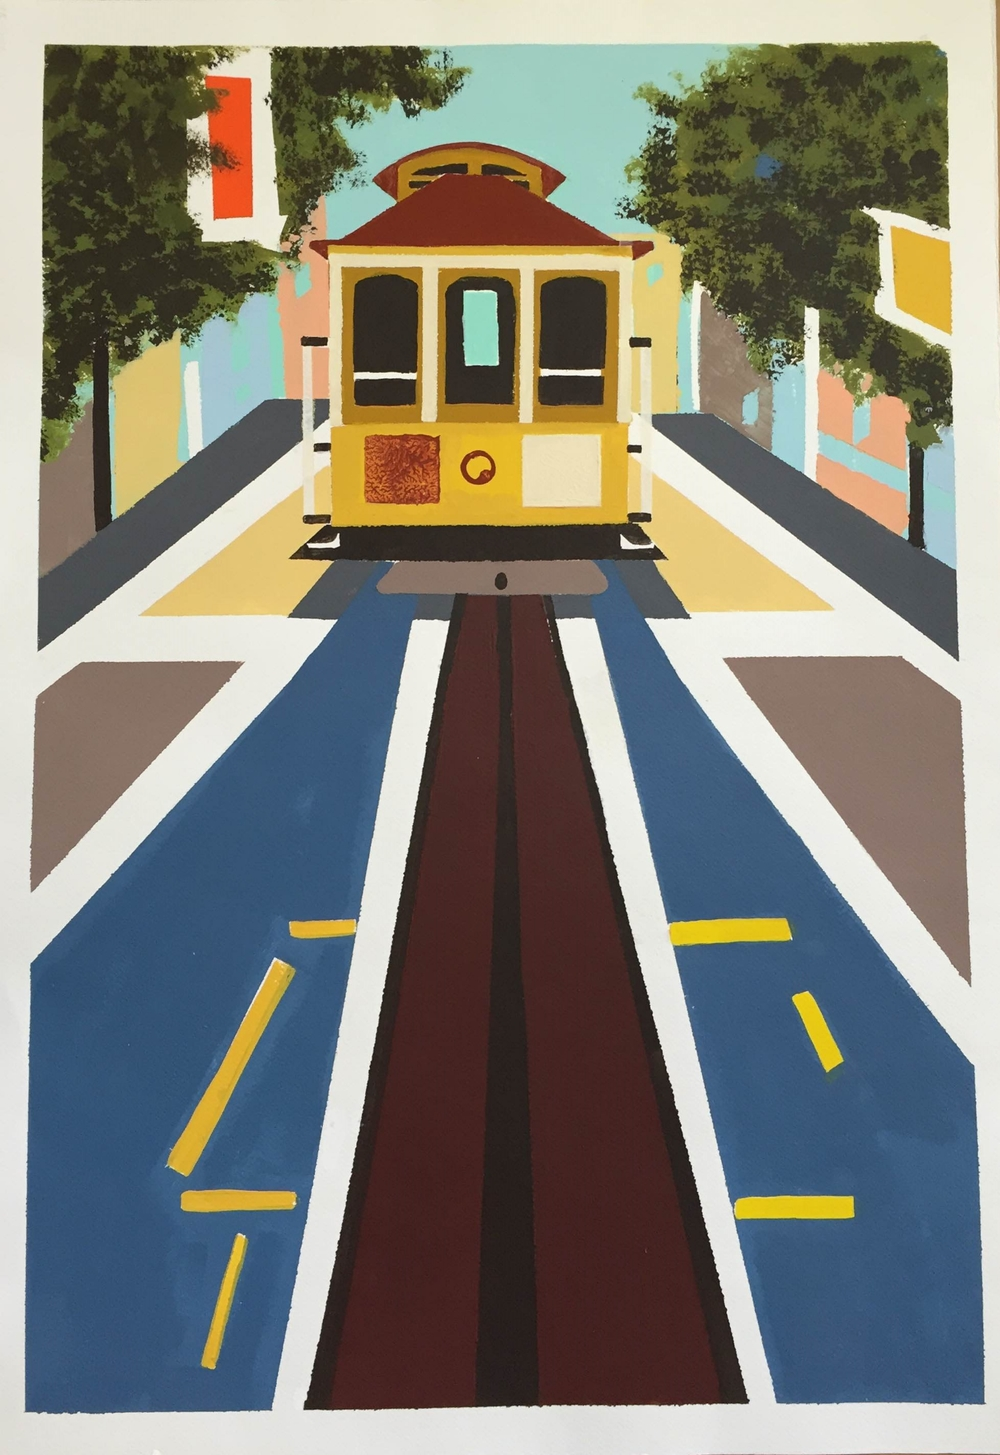 Cable Car Poster (original)